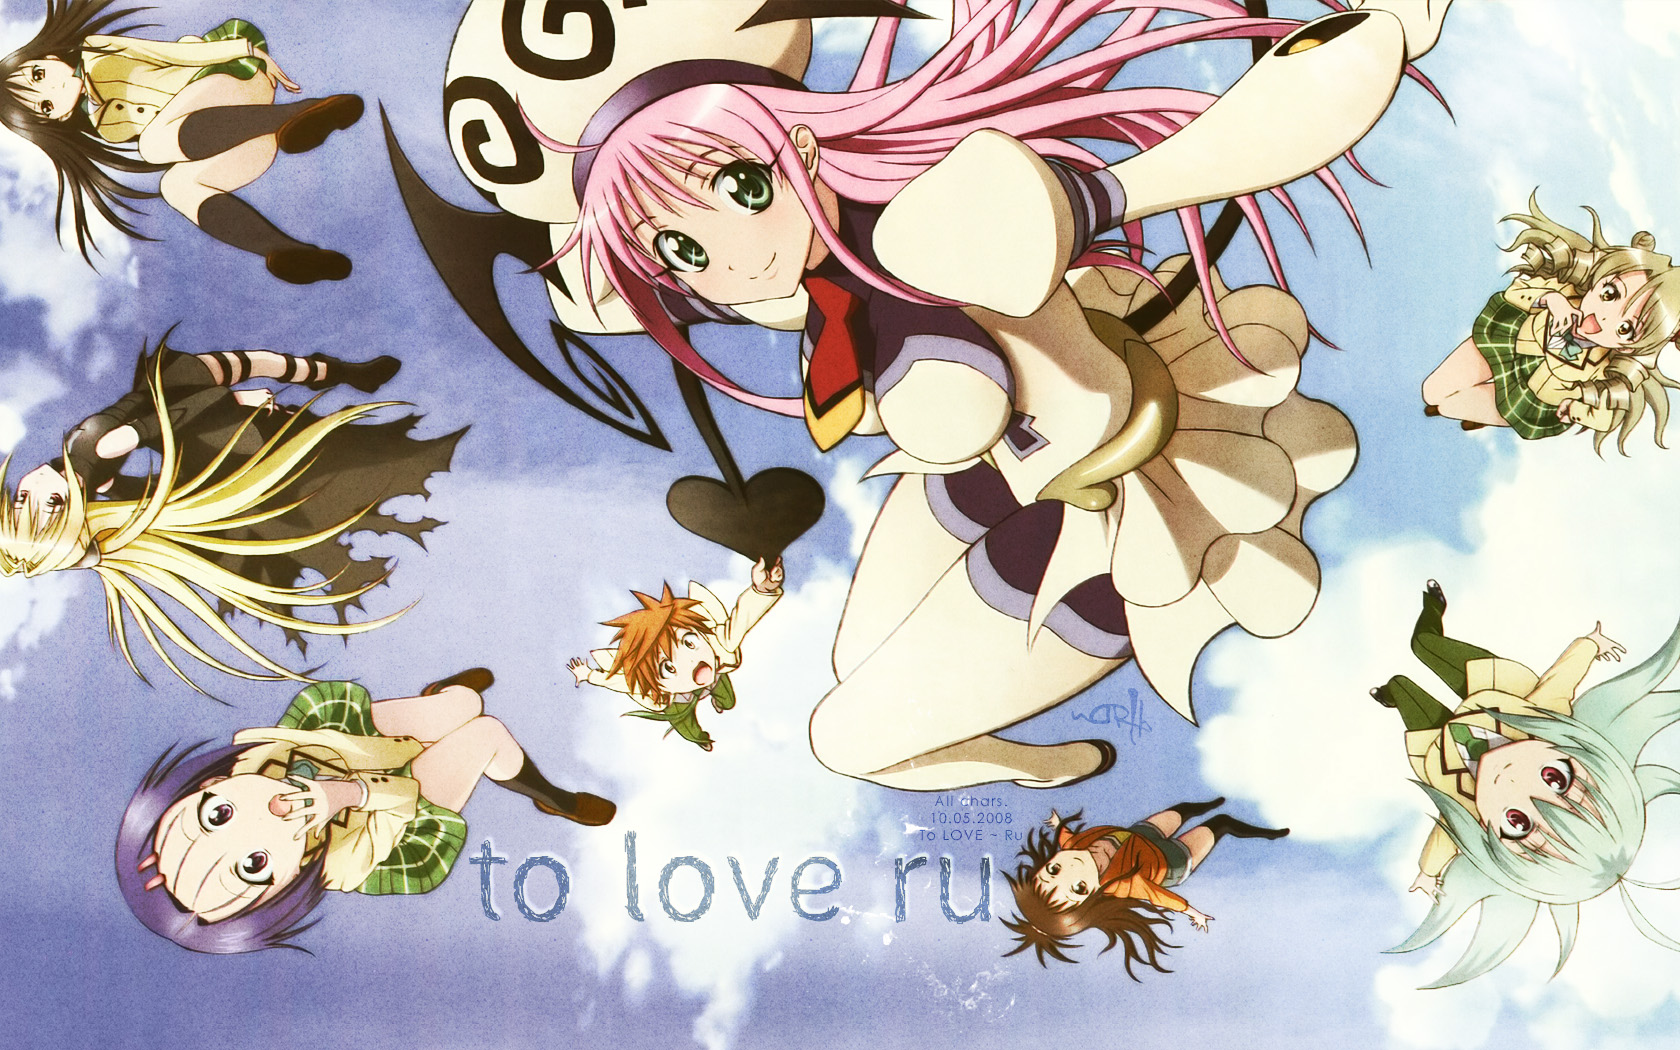 Free Download To Love Ru Darkness 1680x1050 For Your Desktop